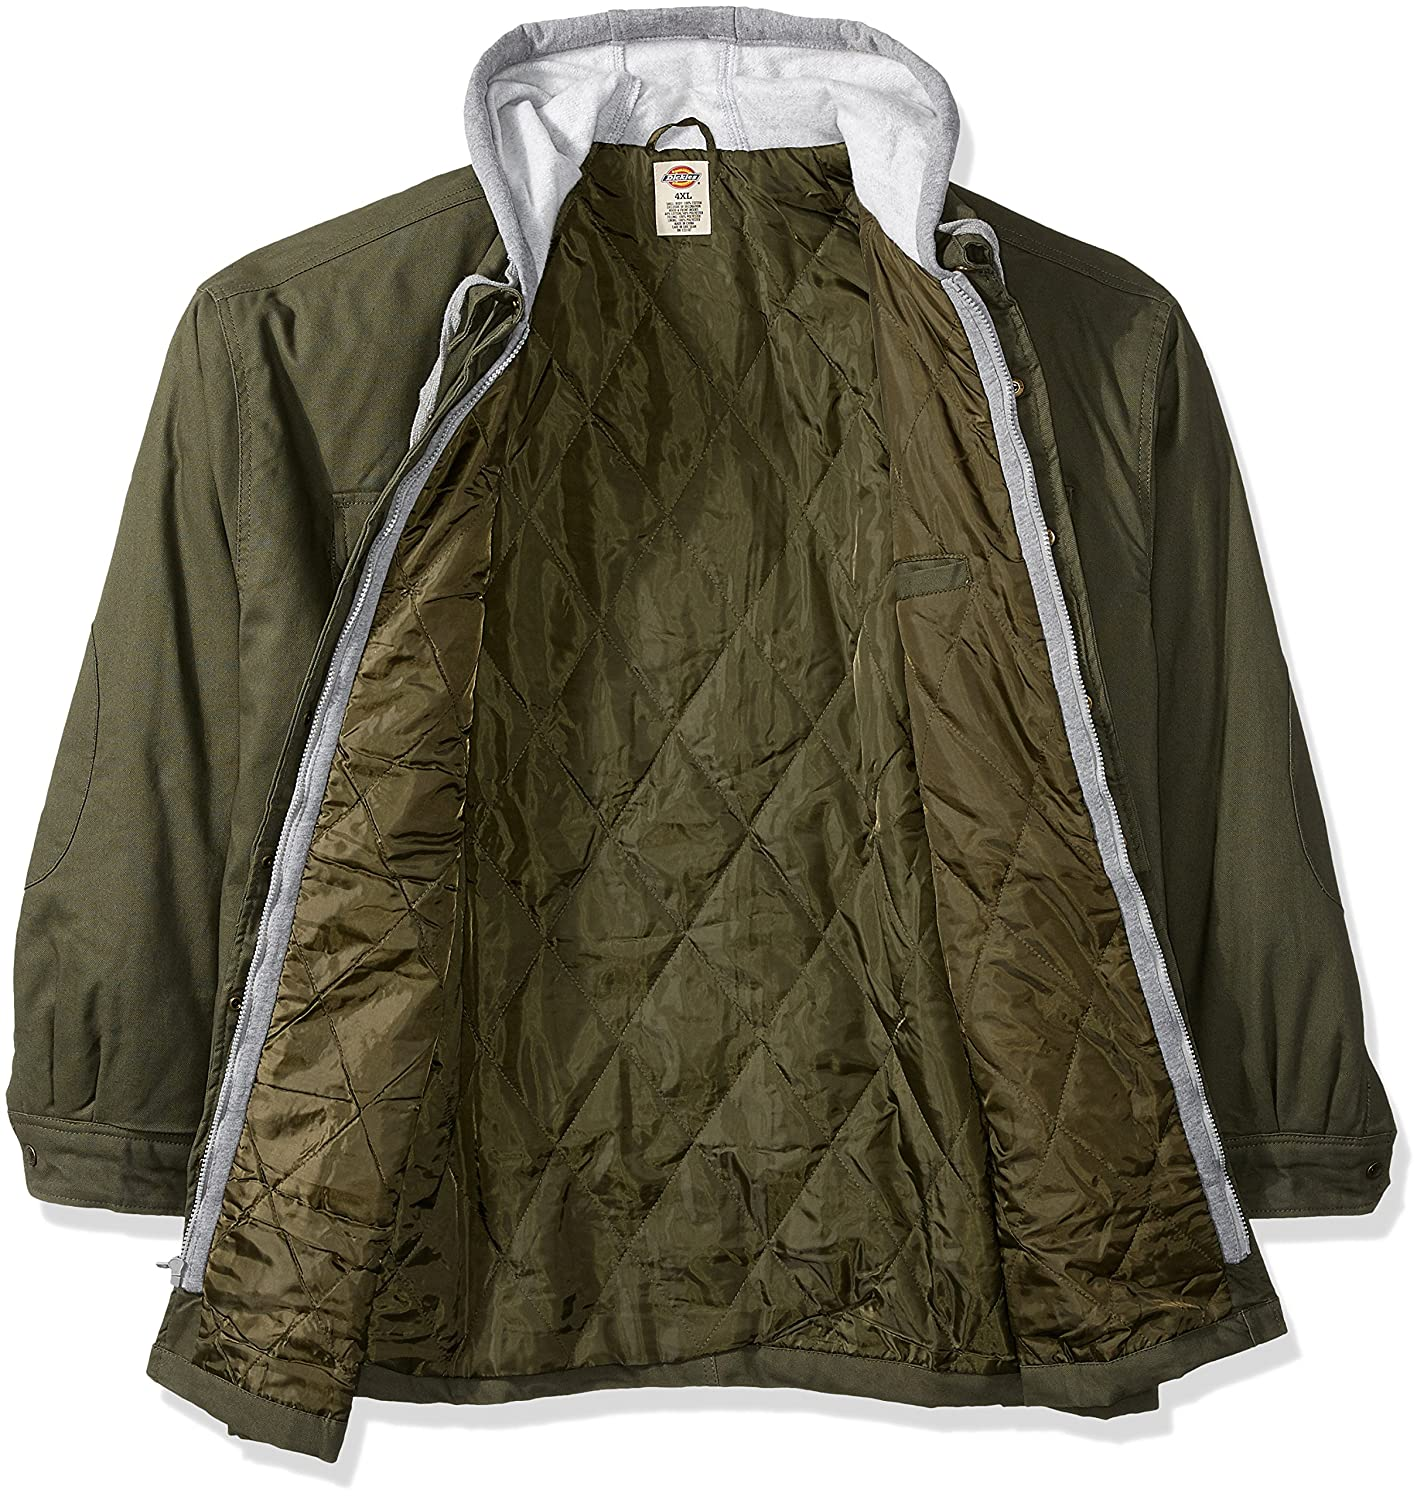 4528452312 Amazon.com  Dickies Men s Canvas Shirt Jacket with Quilted Lining  Work  Utility Outerwear  Clothing